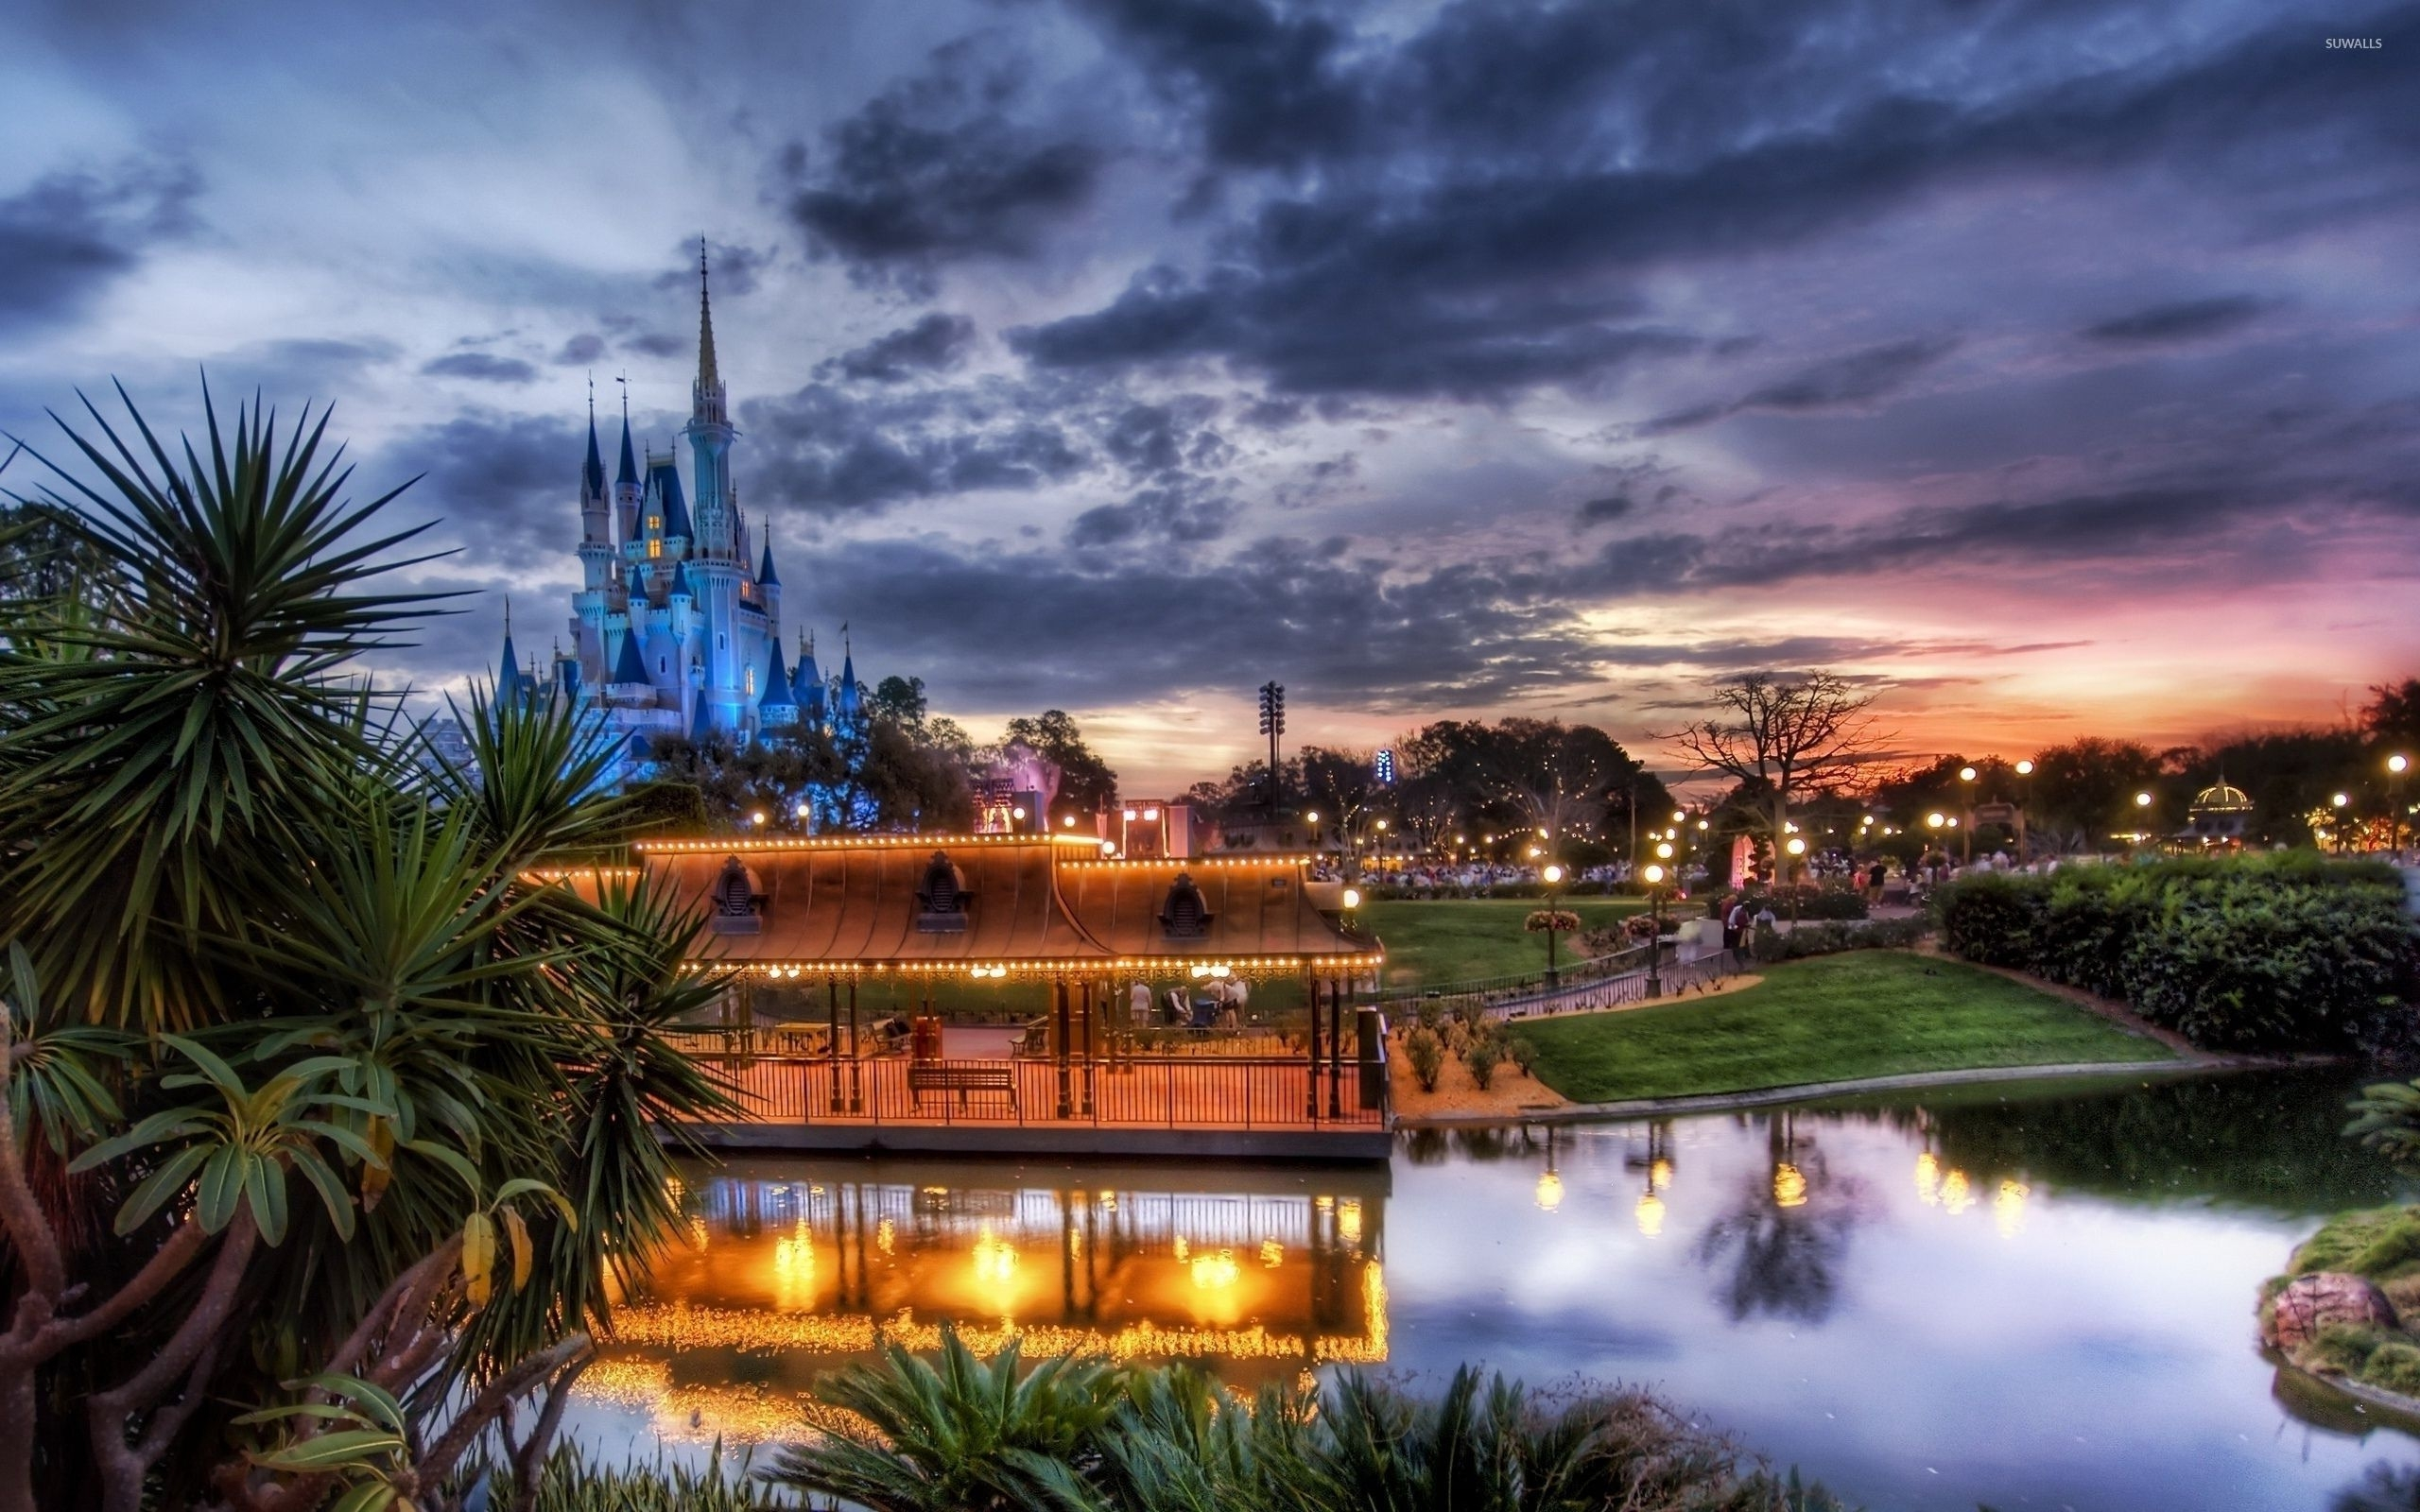 walt disney world desktop wallpaper hd - media file | pixelstalk